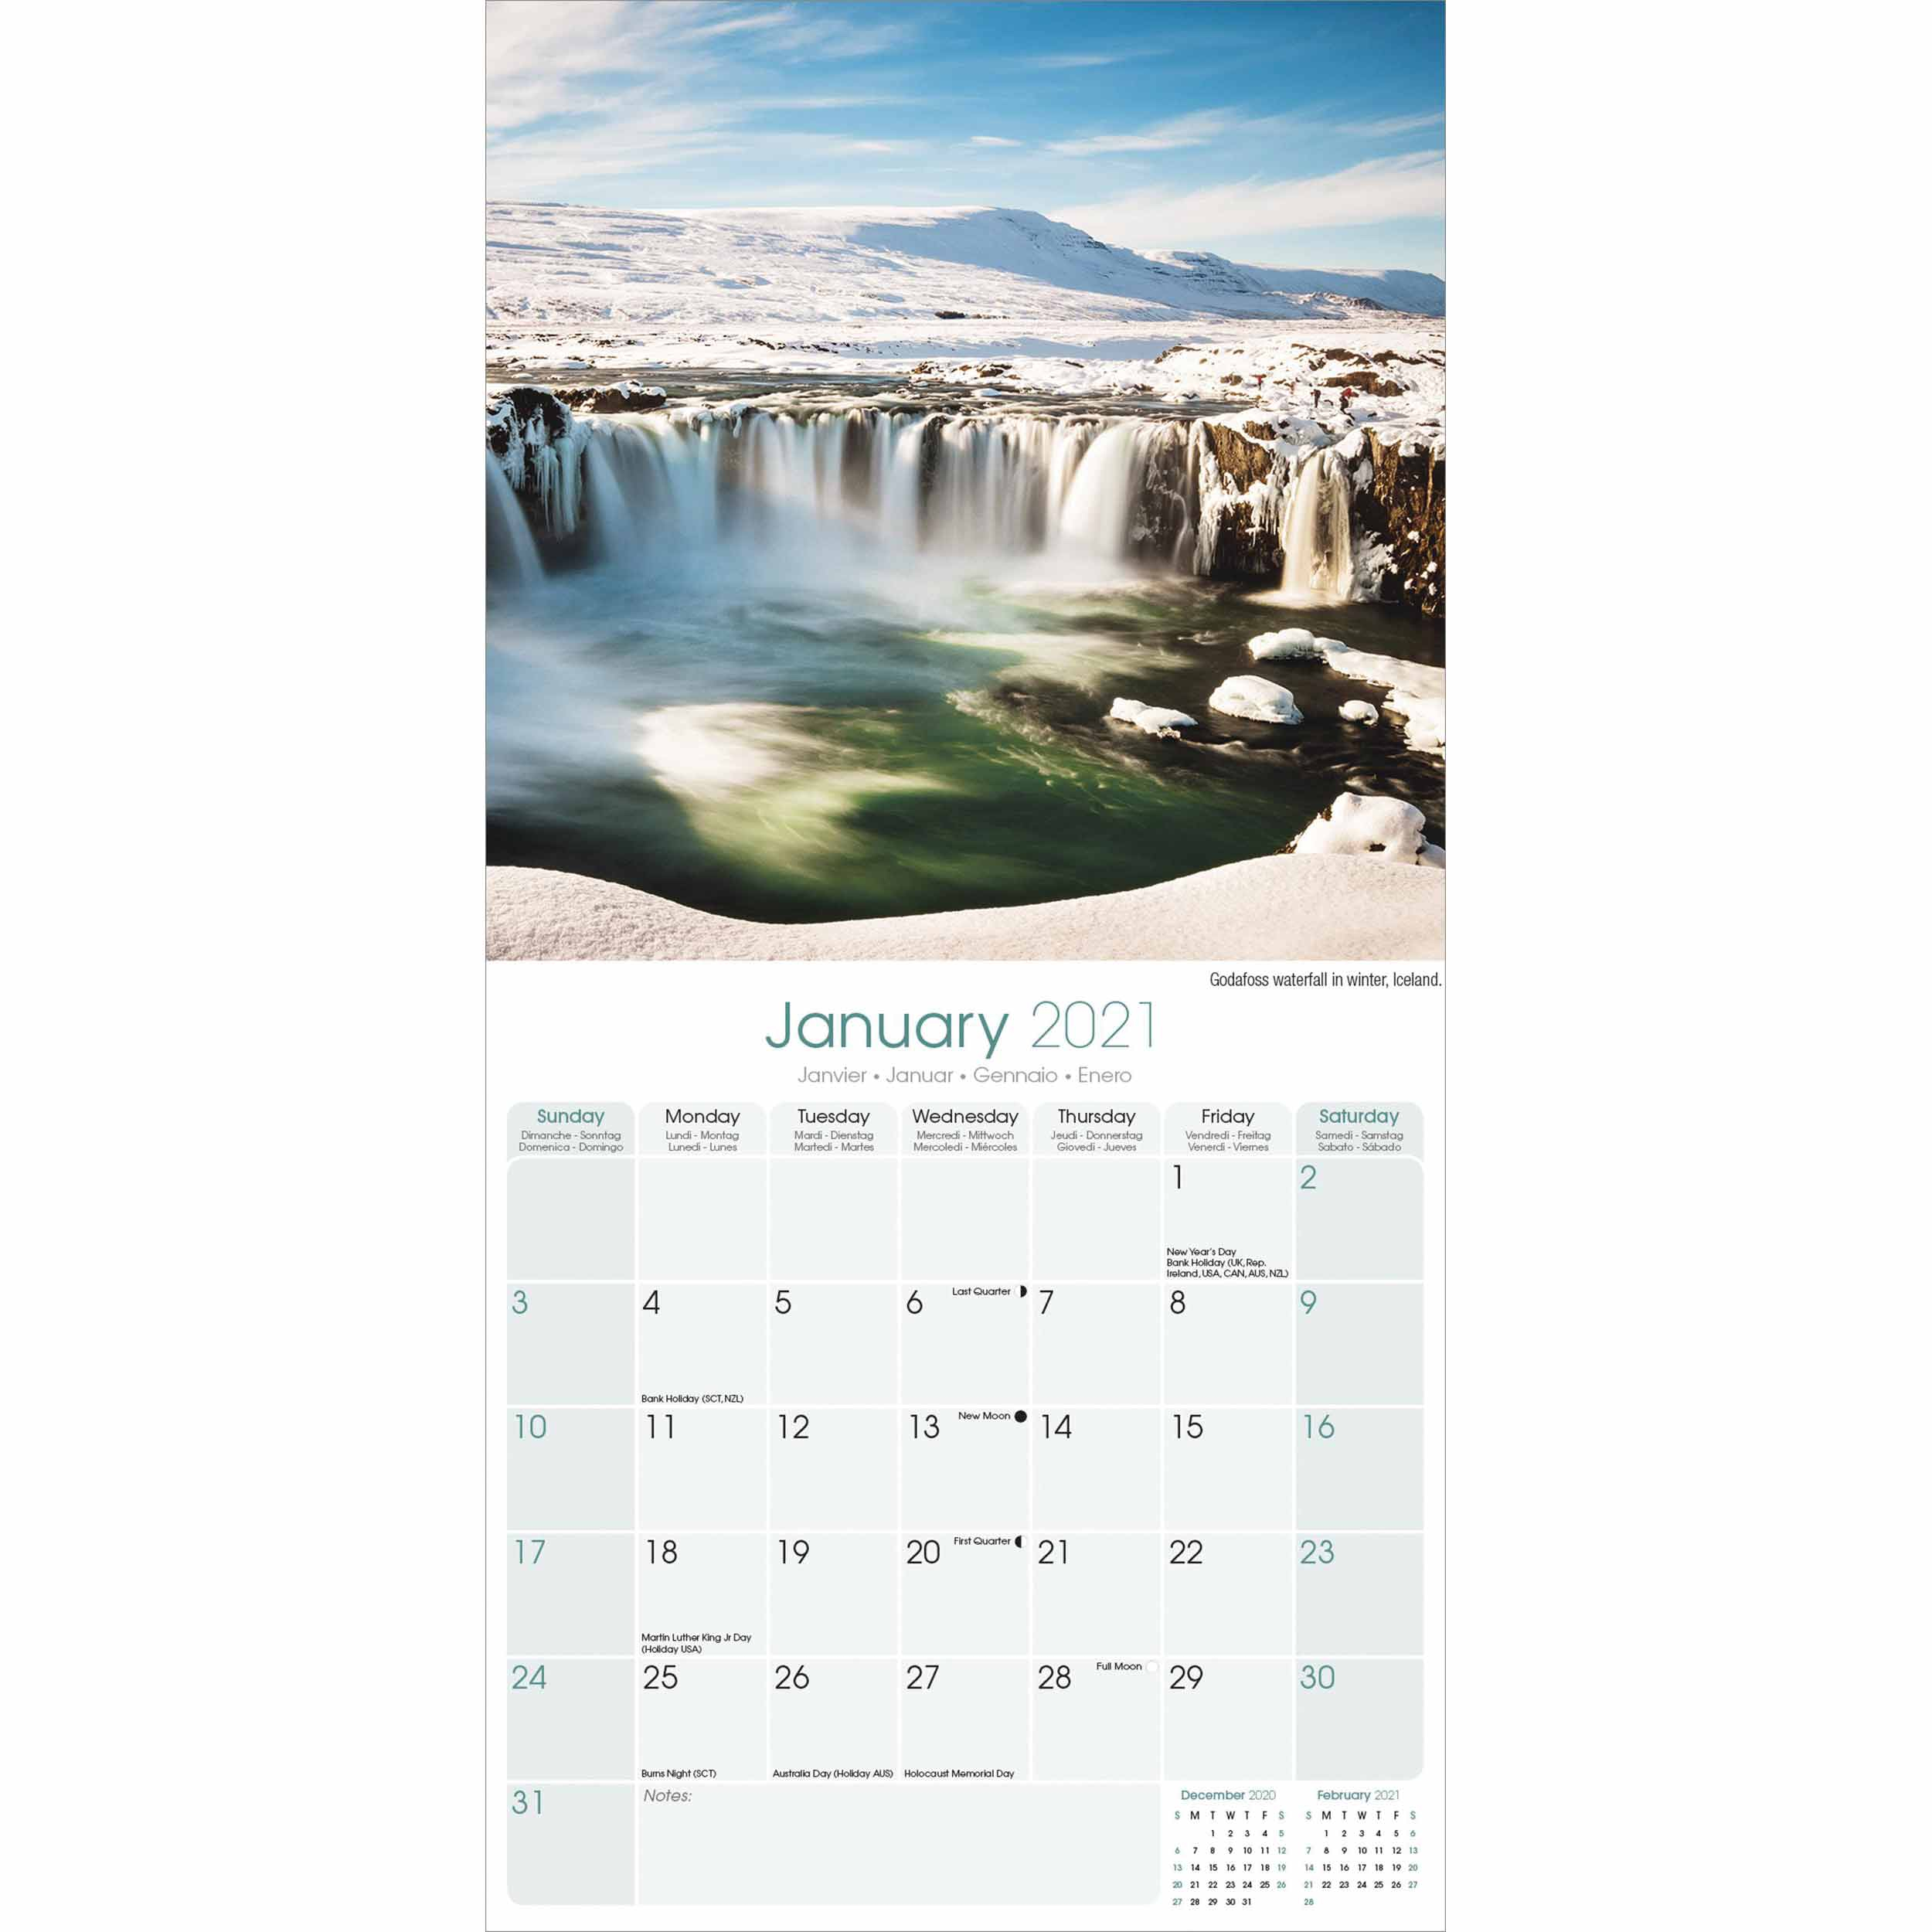 Waterfalls Calendar 2021 At Calendar Club In Niagara Falls School Calendar 2021